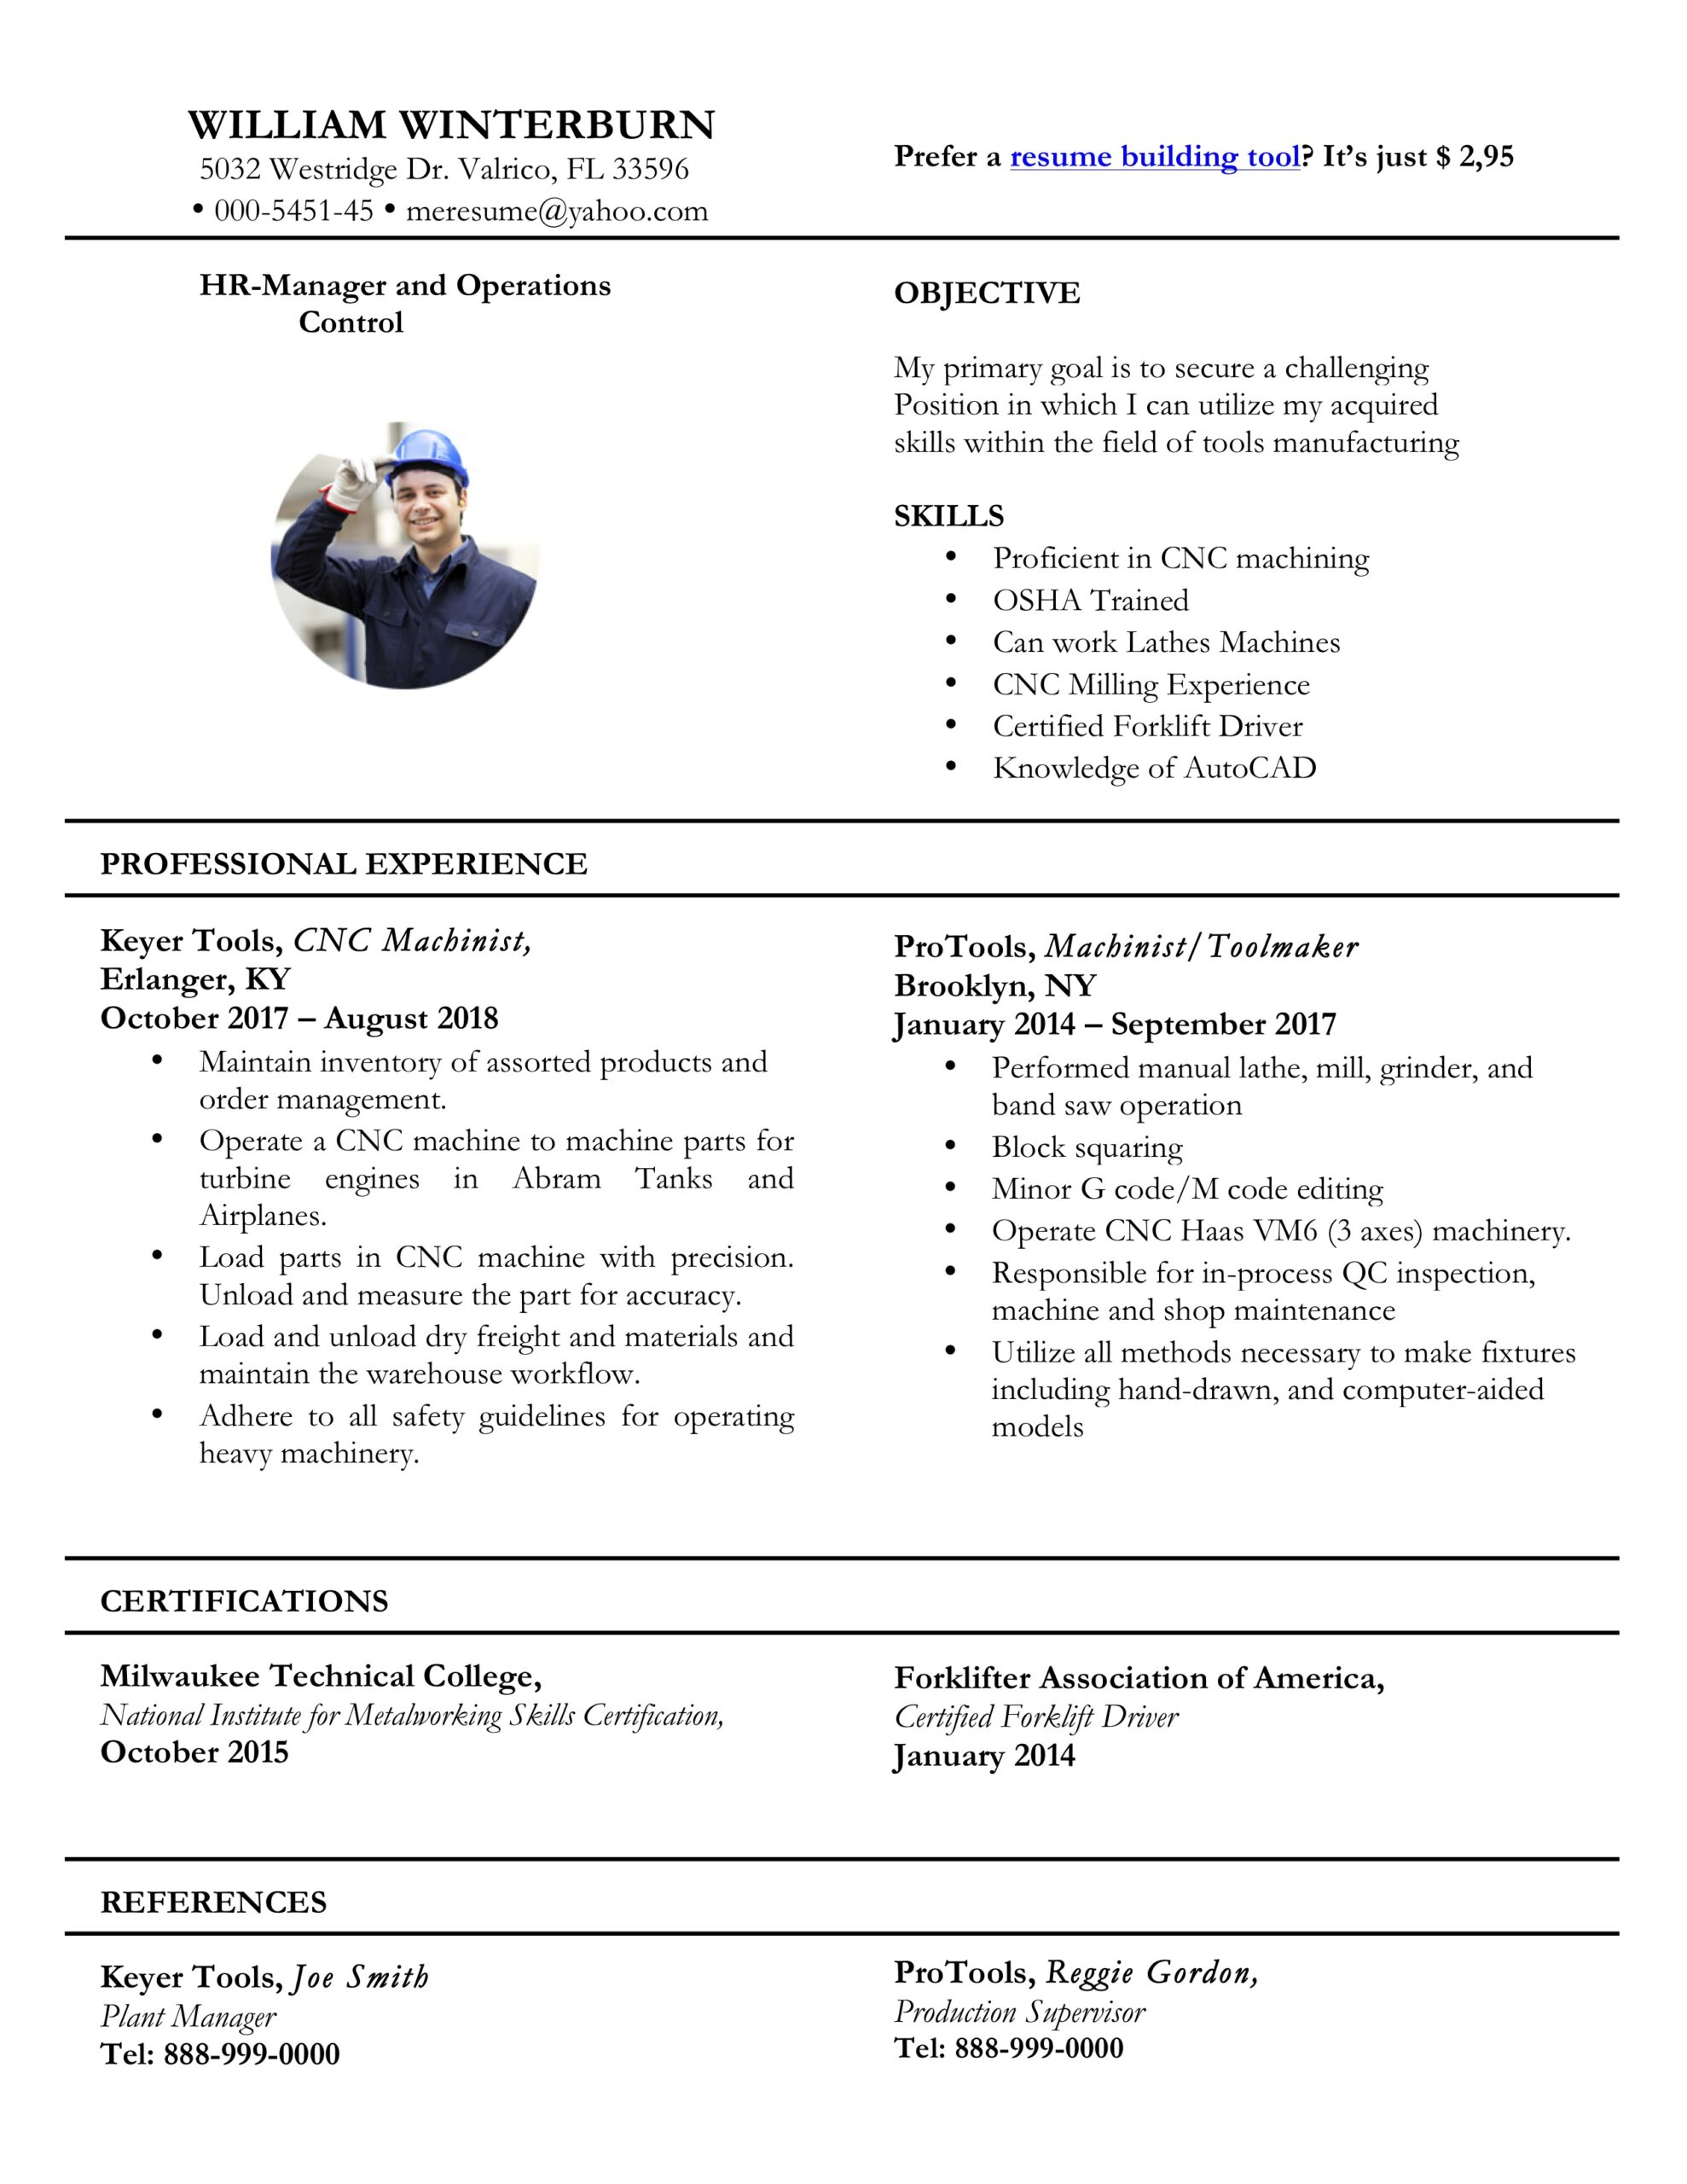 resume templates pdf word free downloads and guides current format template esthetician Resume Current Resume Format 2019